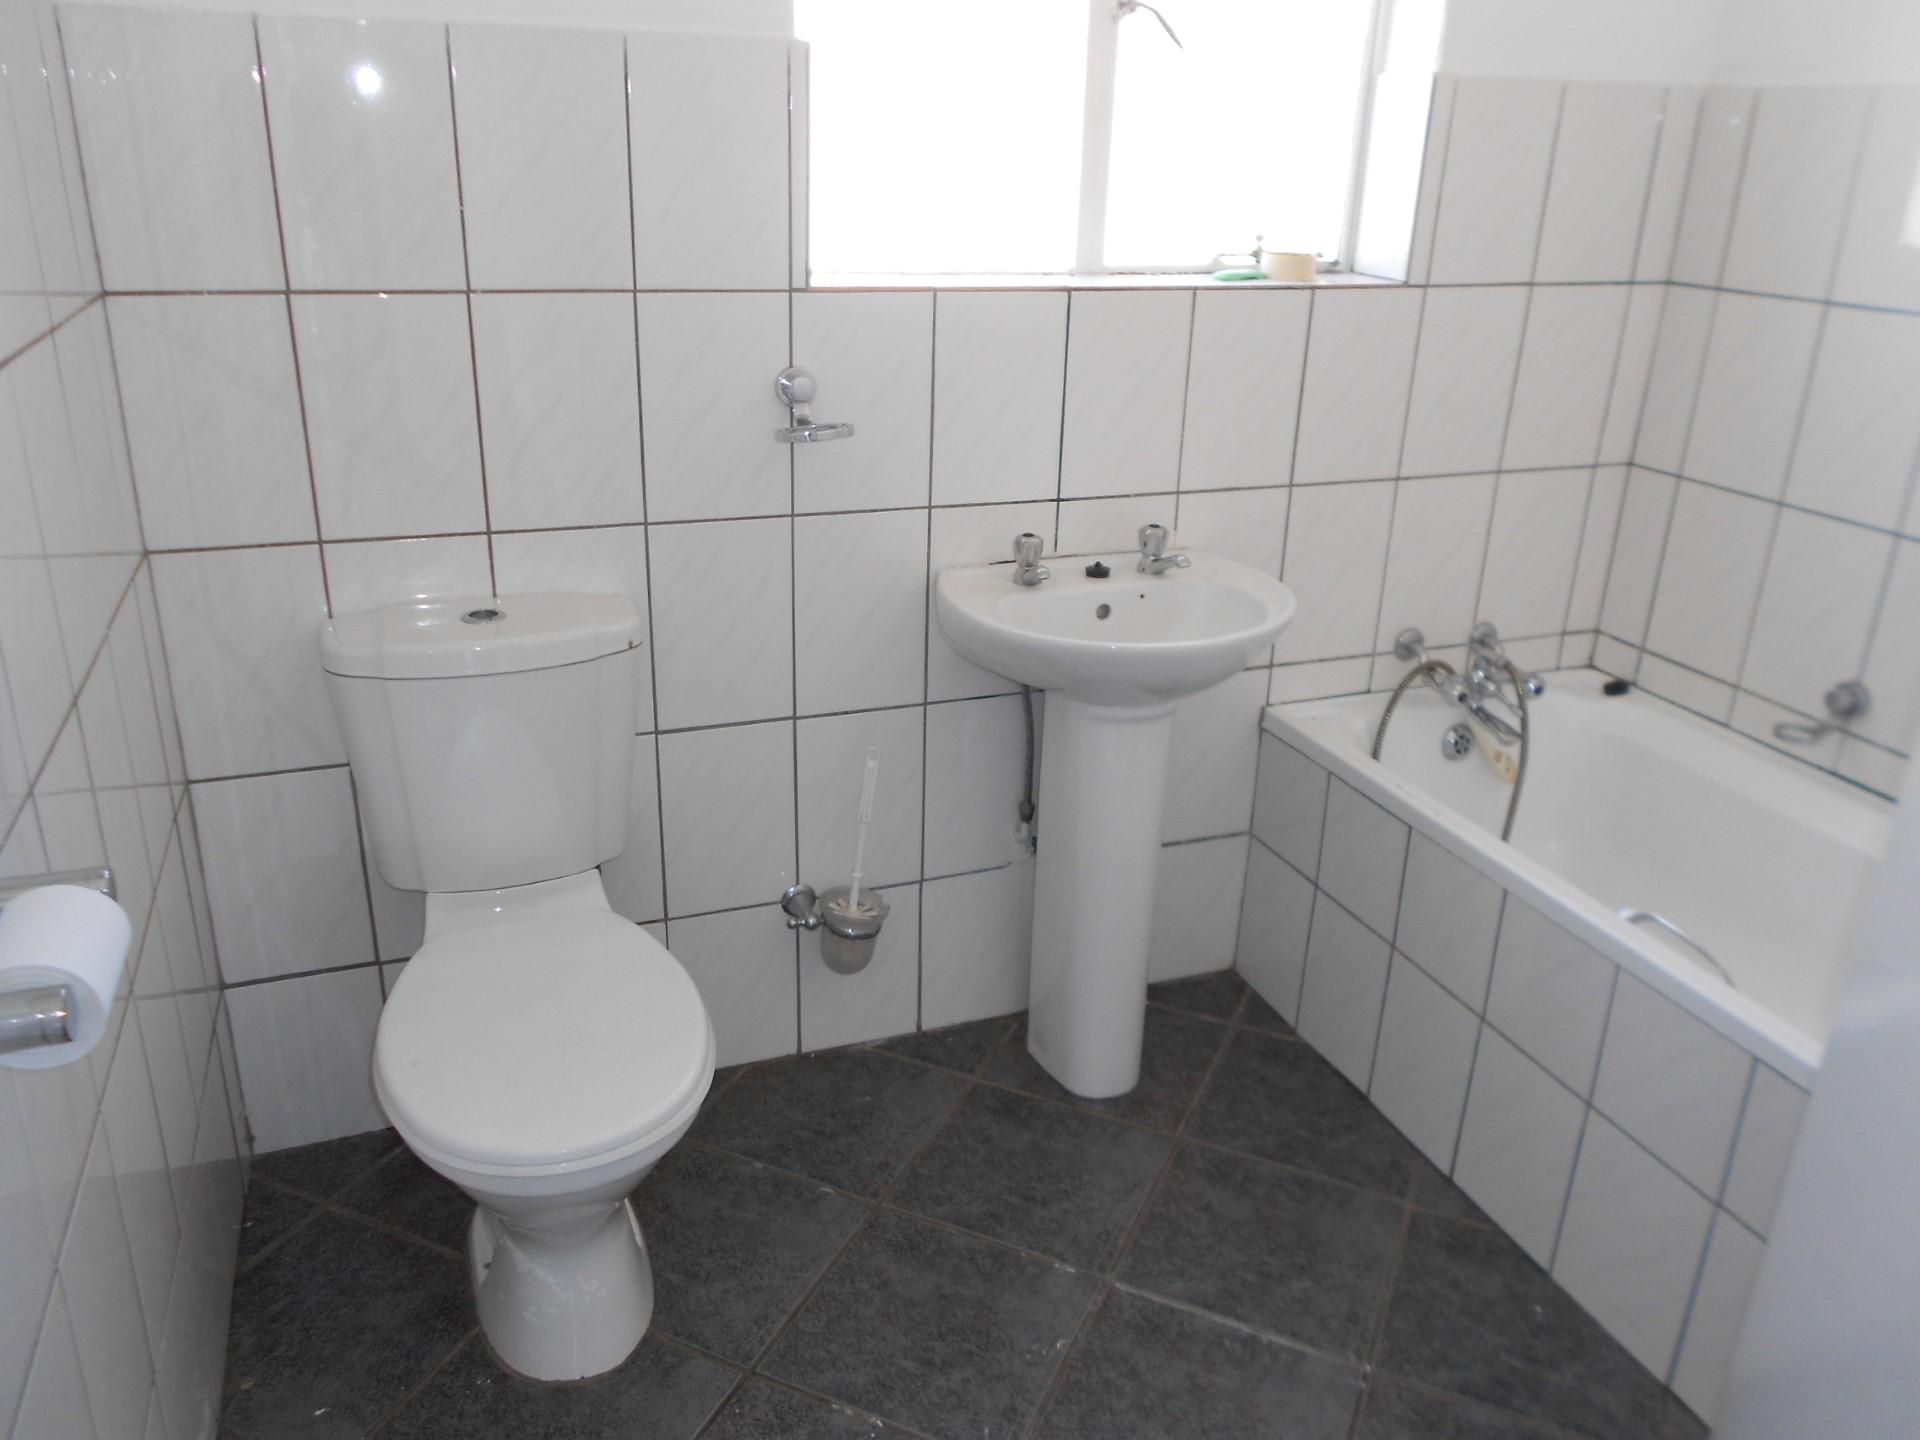 Main Bathroom of property in Rensburg